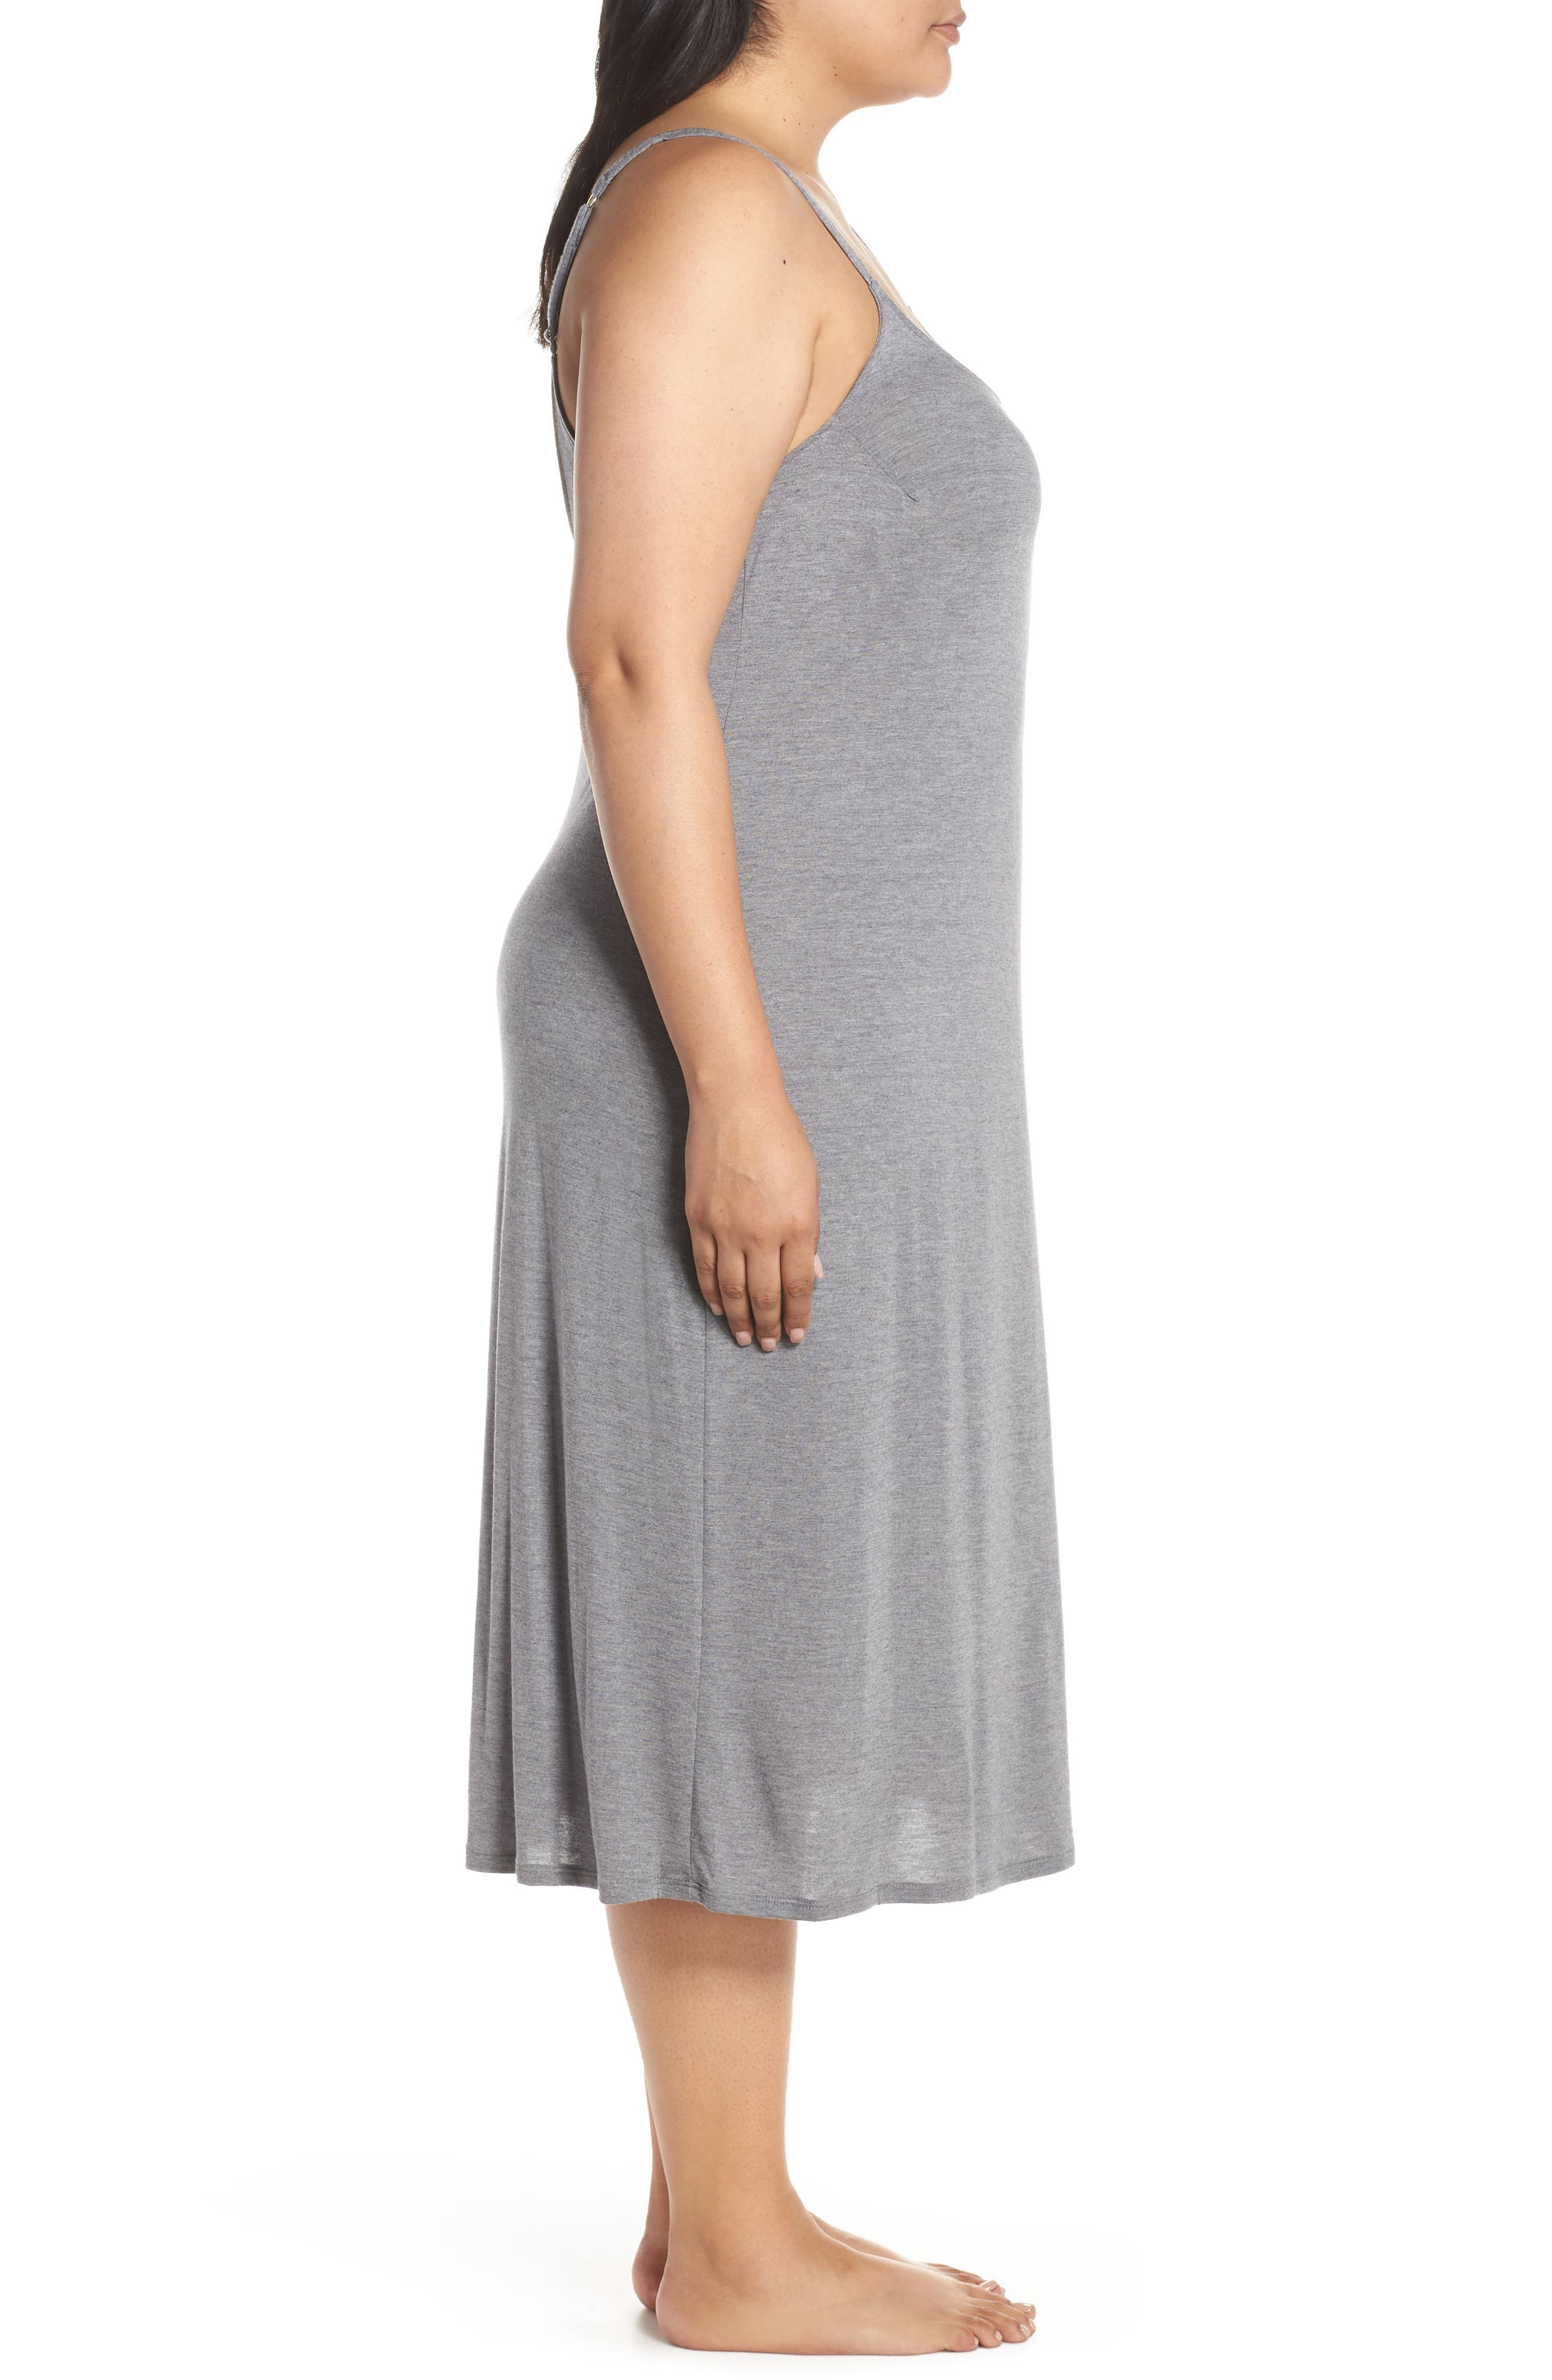 NATORI, 'Shangri La' Nightgown, Alternate thumbnail 4, color, 051